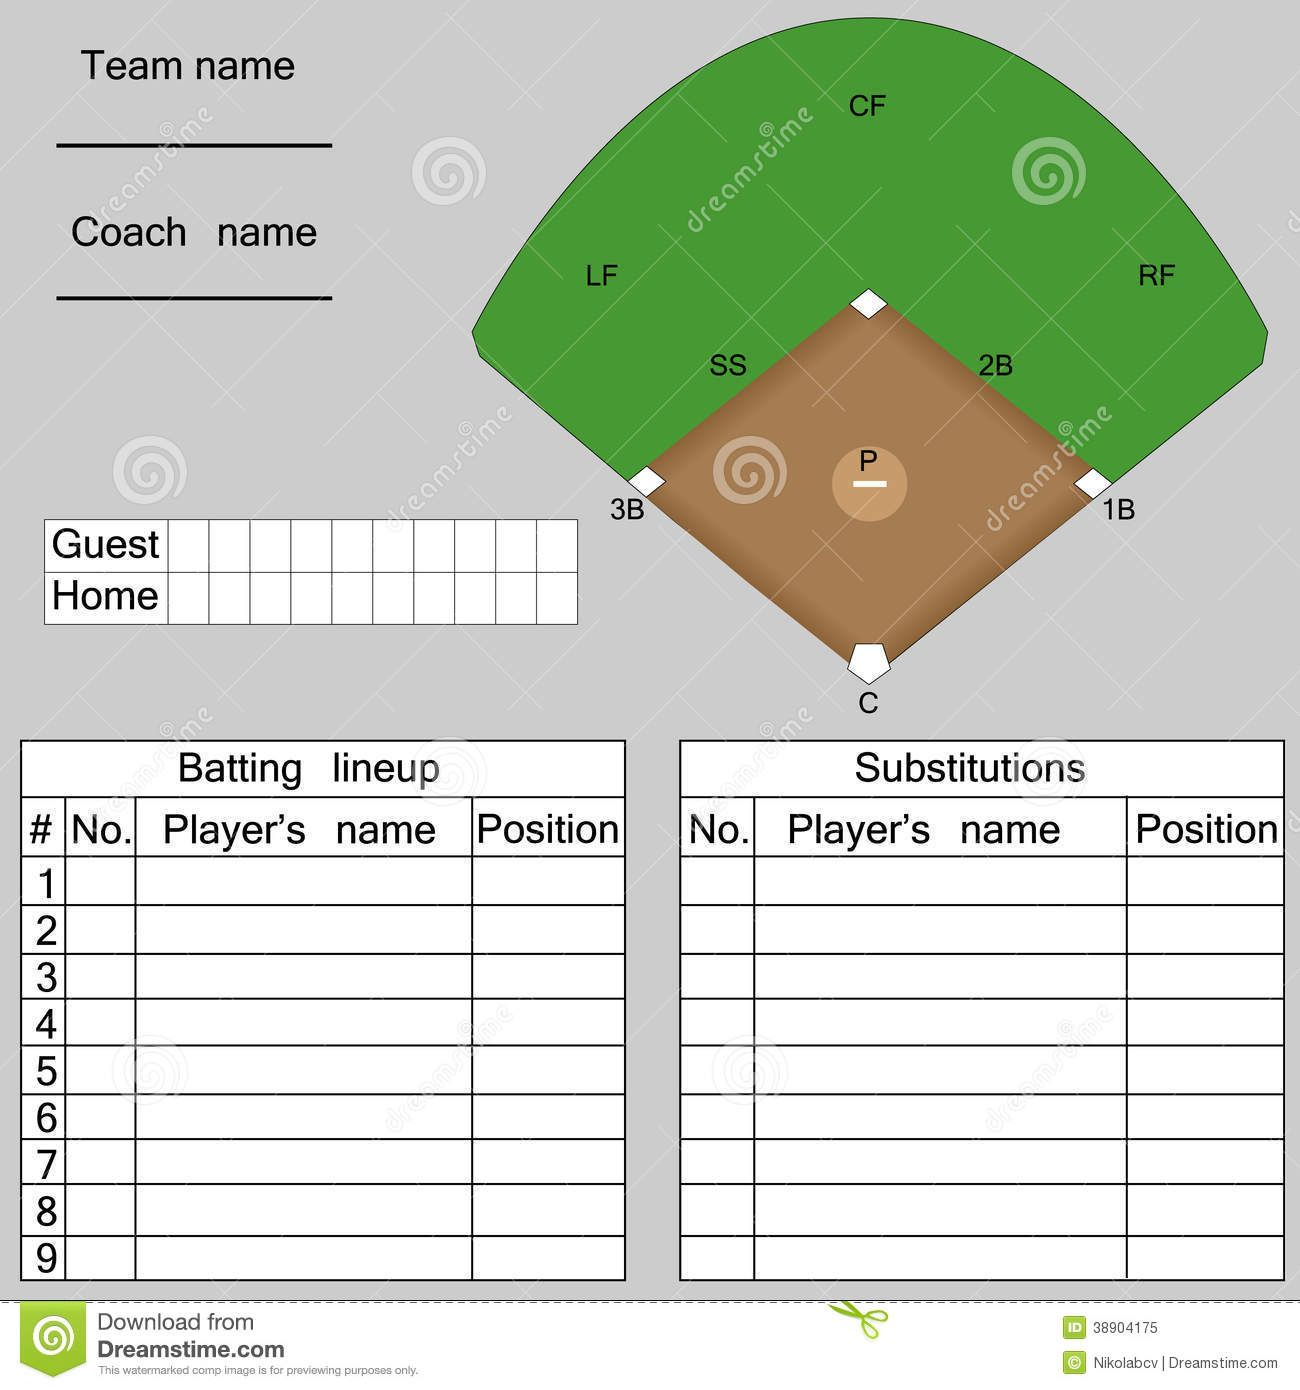 image result for youth baseball lineup